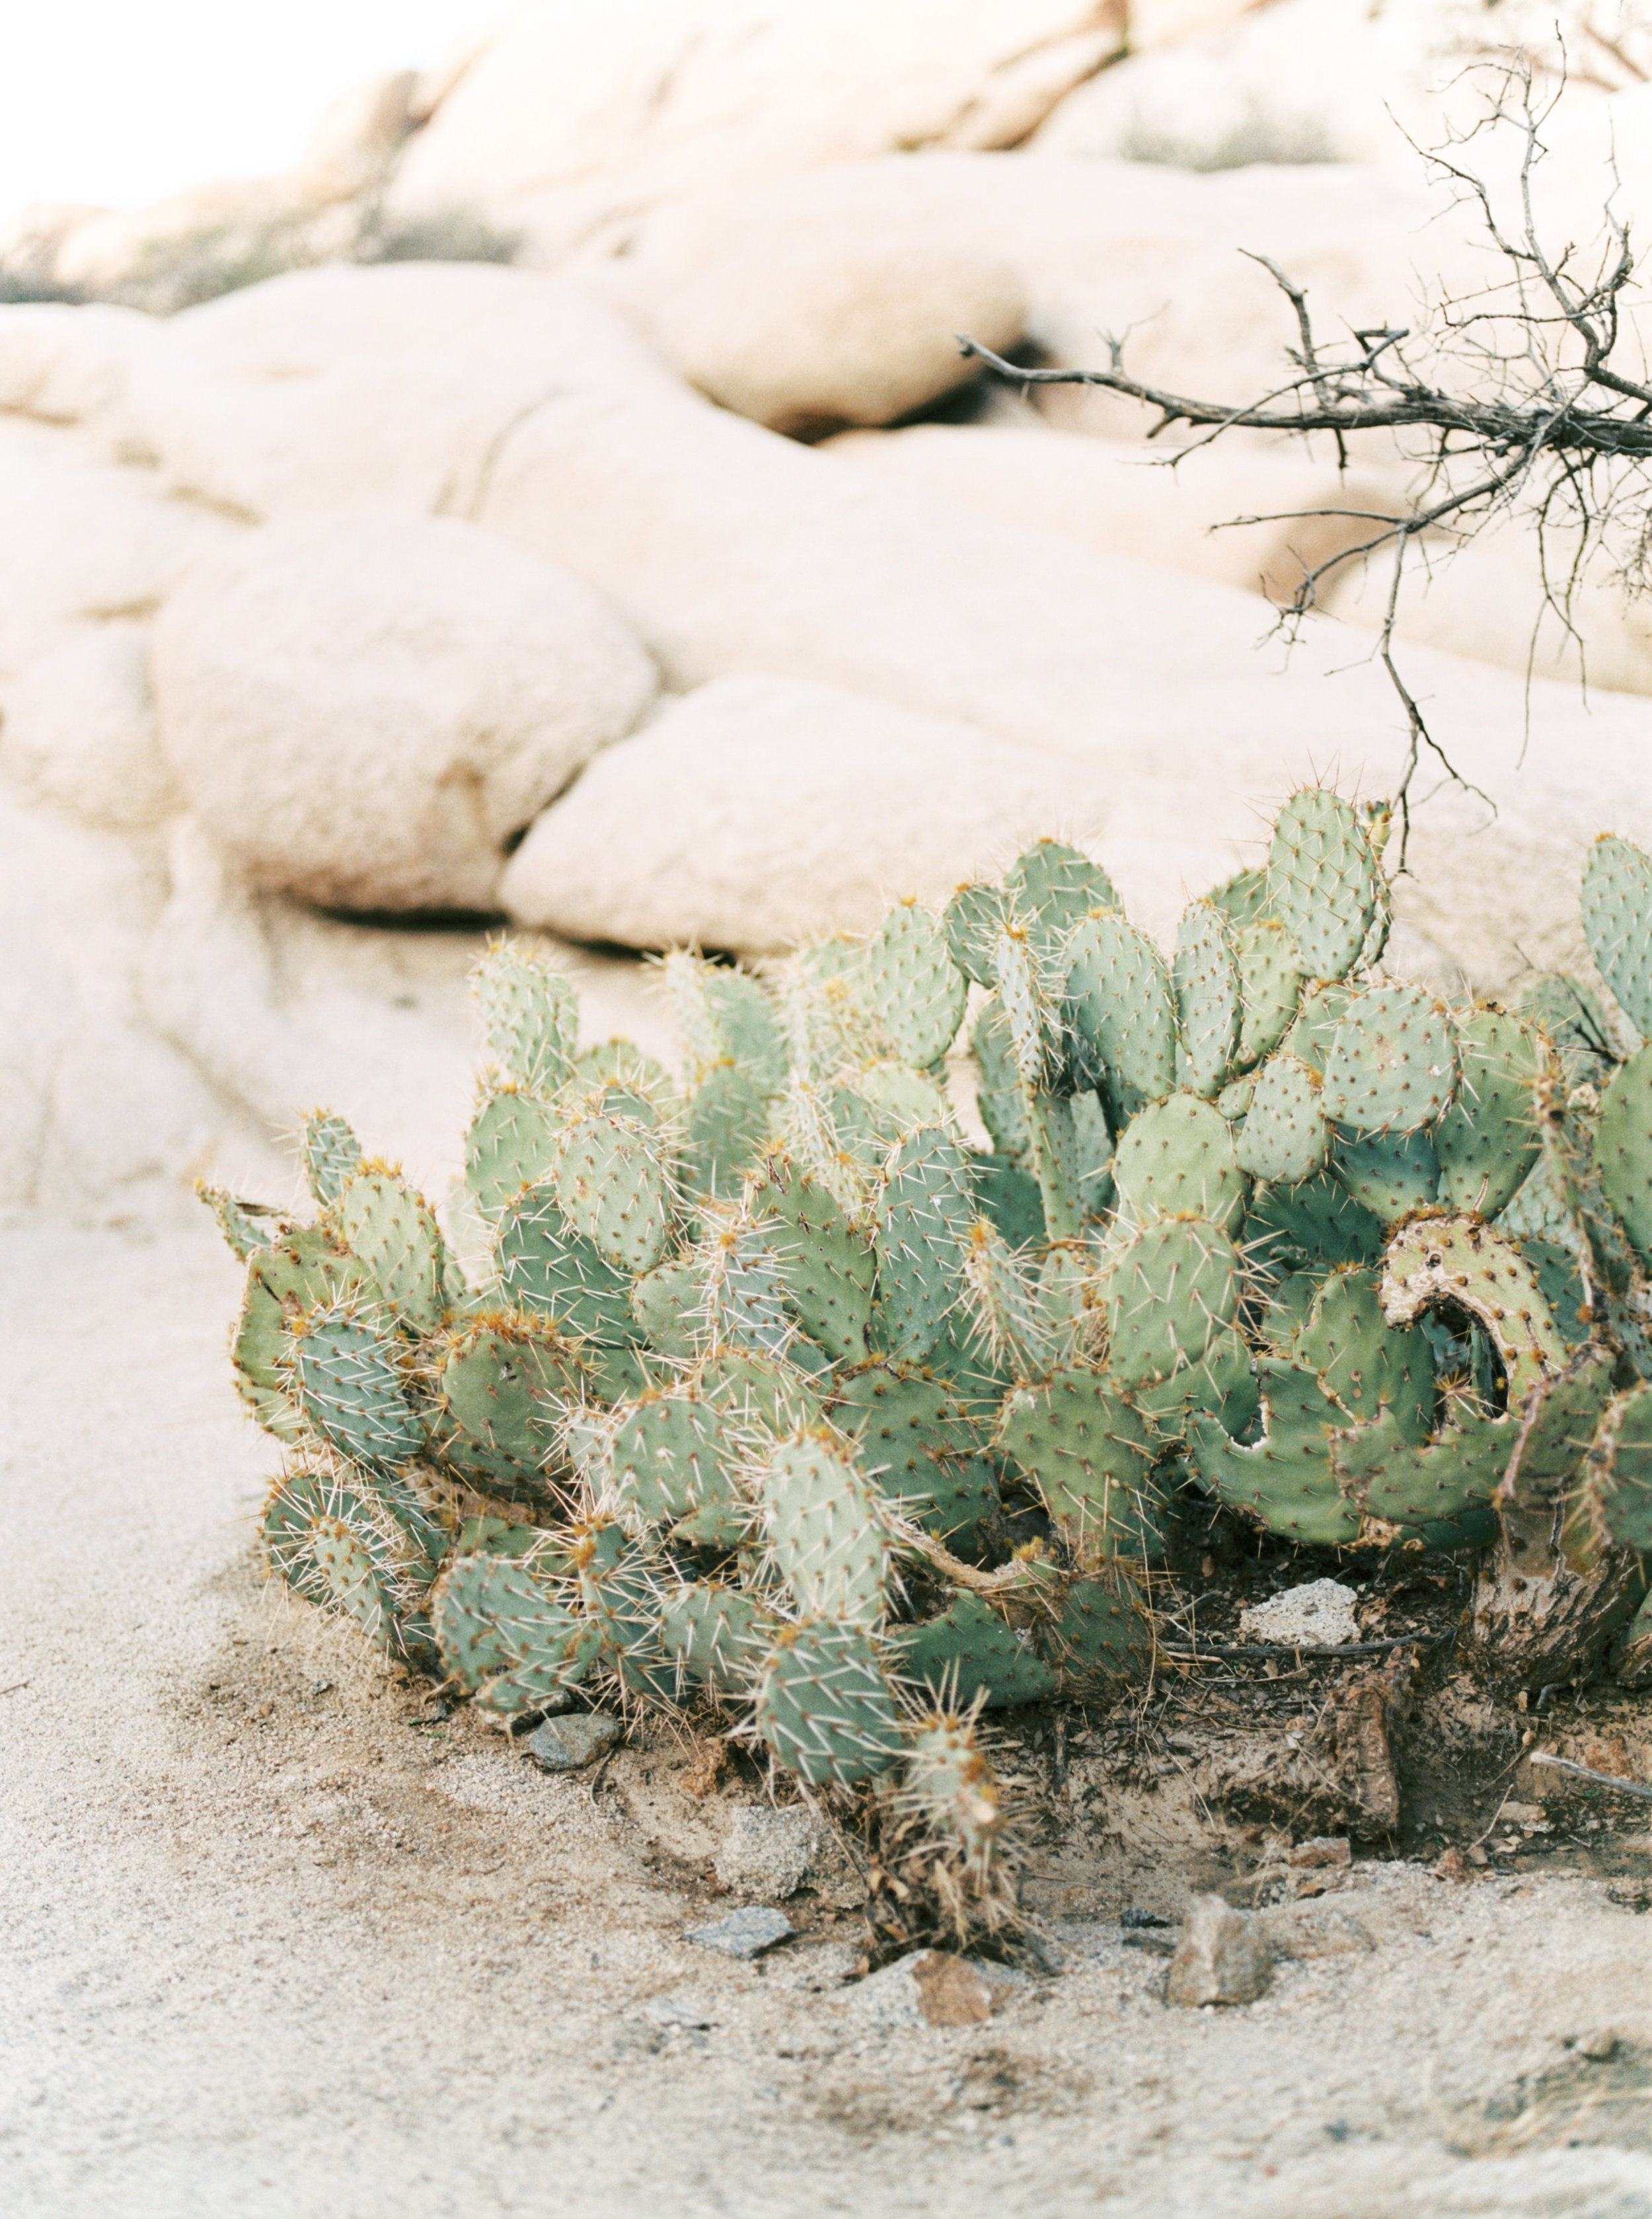 We loved seeing the cacti growing wild out west for this free-spirited desert engagement session in Joshue Tree